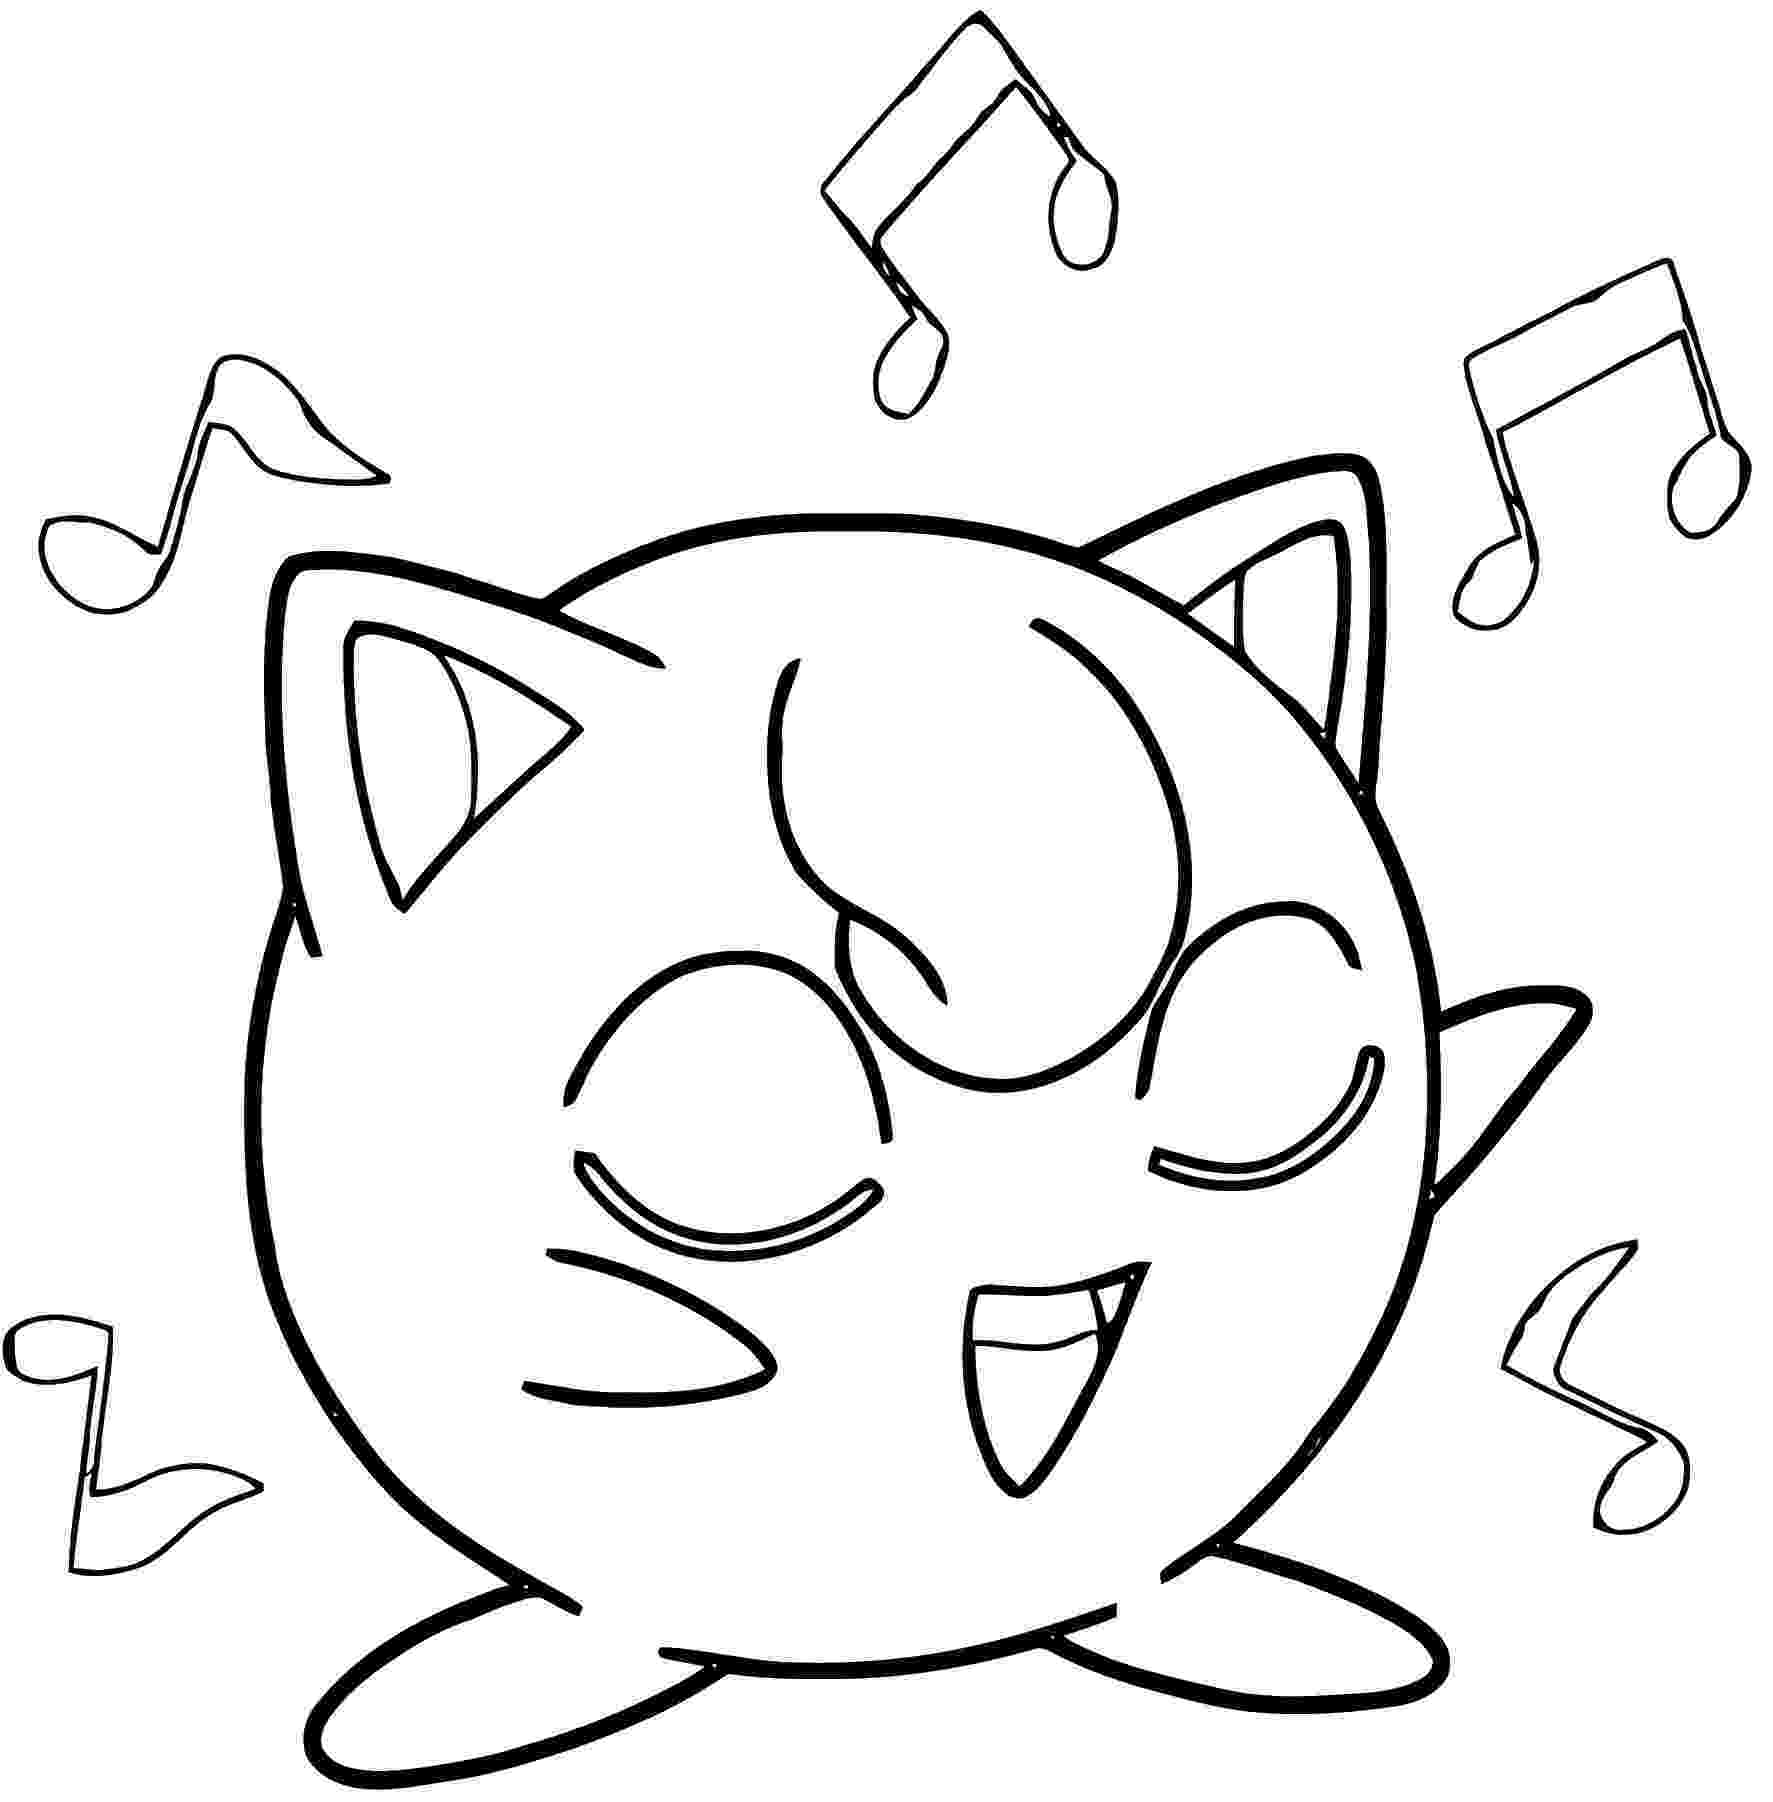 jigglypuff coloring pages jigglypuff possible sketches pinterest pokemon pages coloring jigglypuff